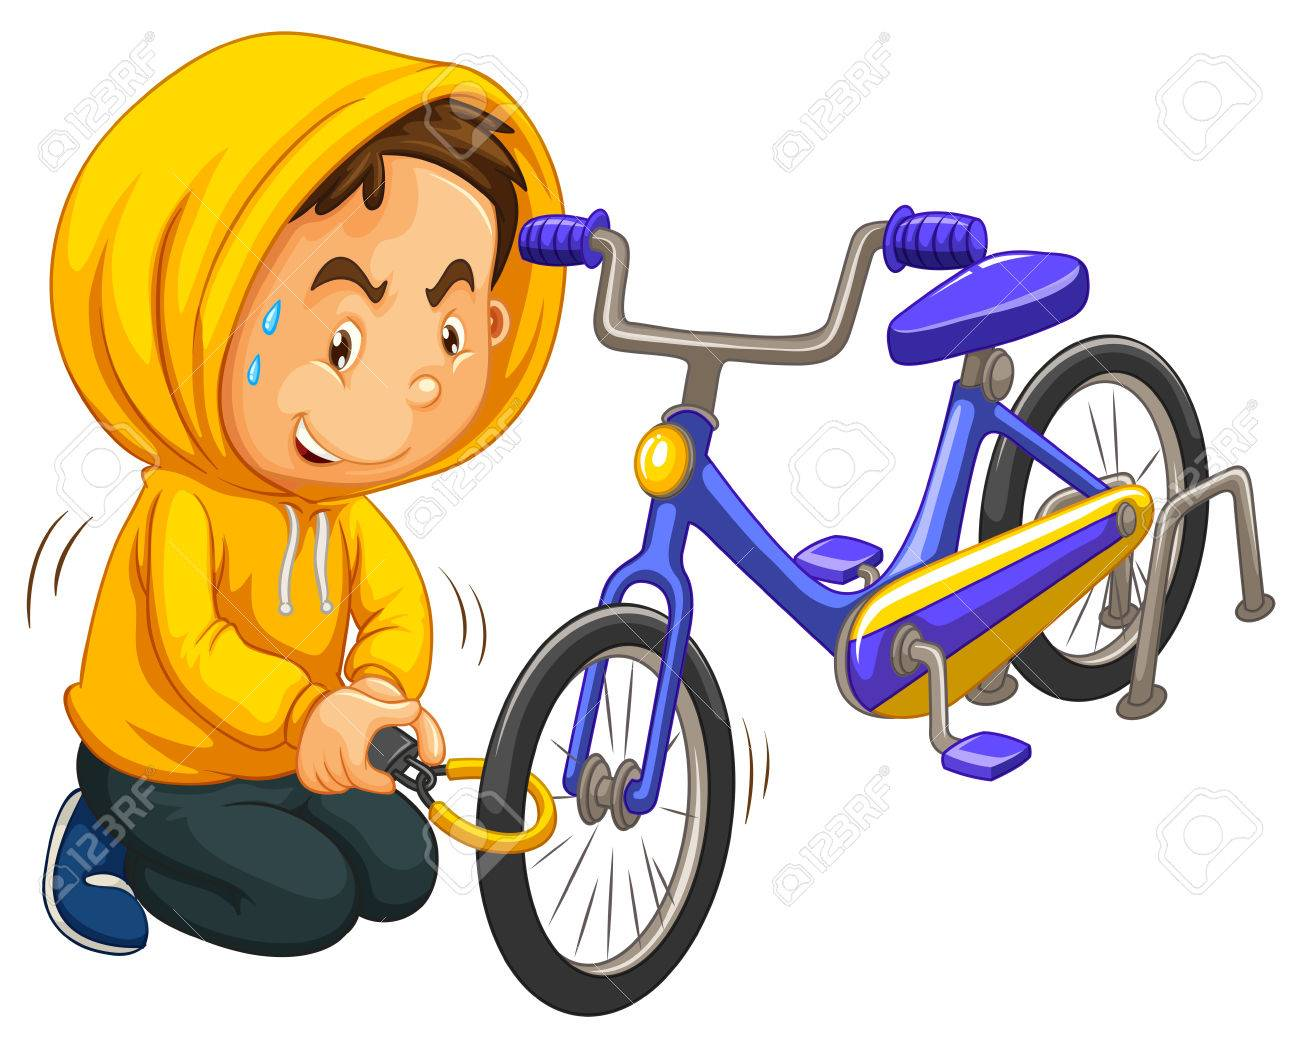 boy in yellow hood stealing bicycle illustration royalty free rh 123rf com stealing food clipart stealing information clipart